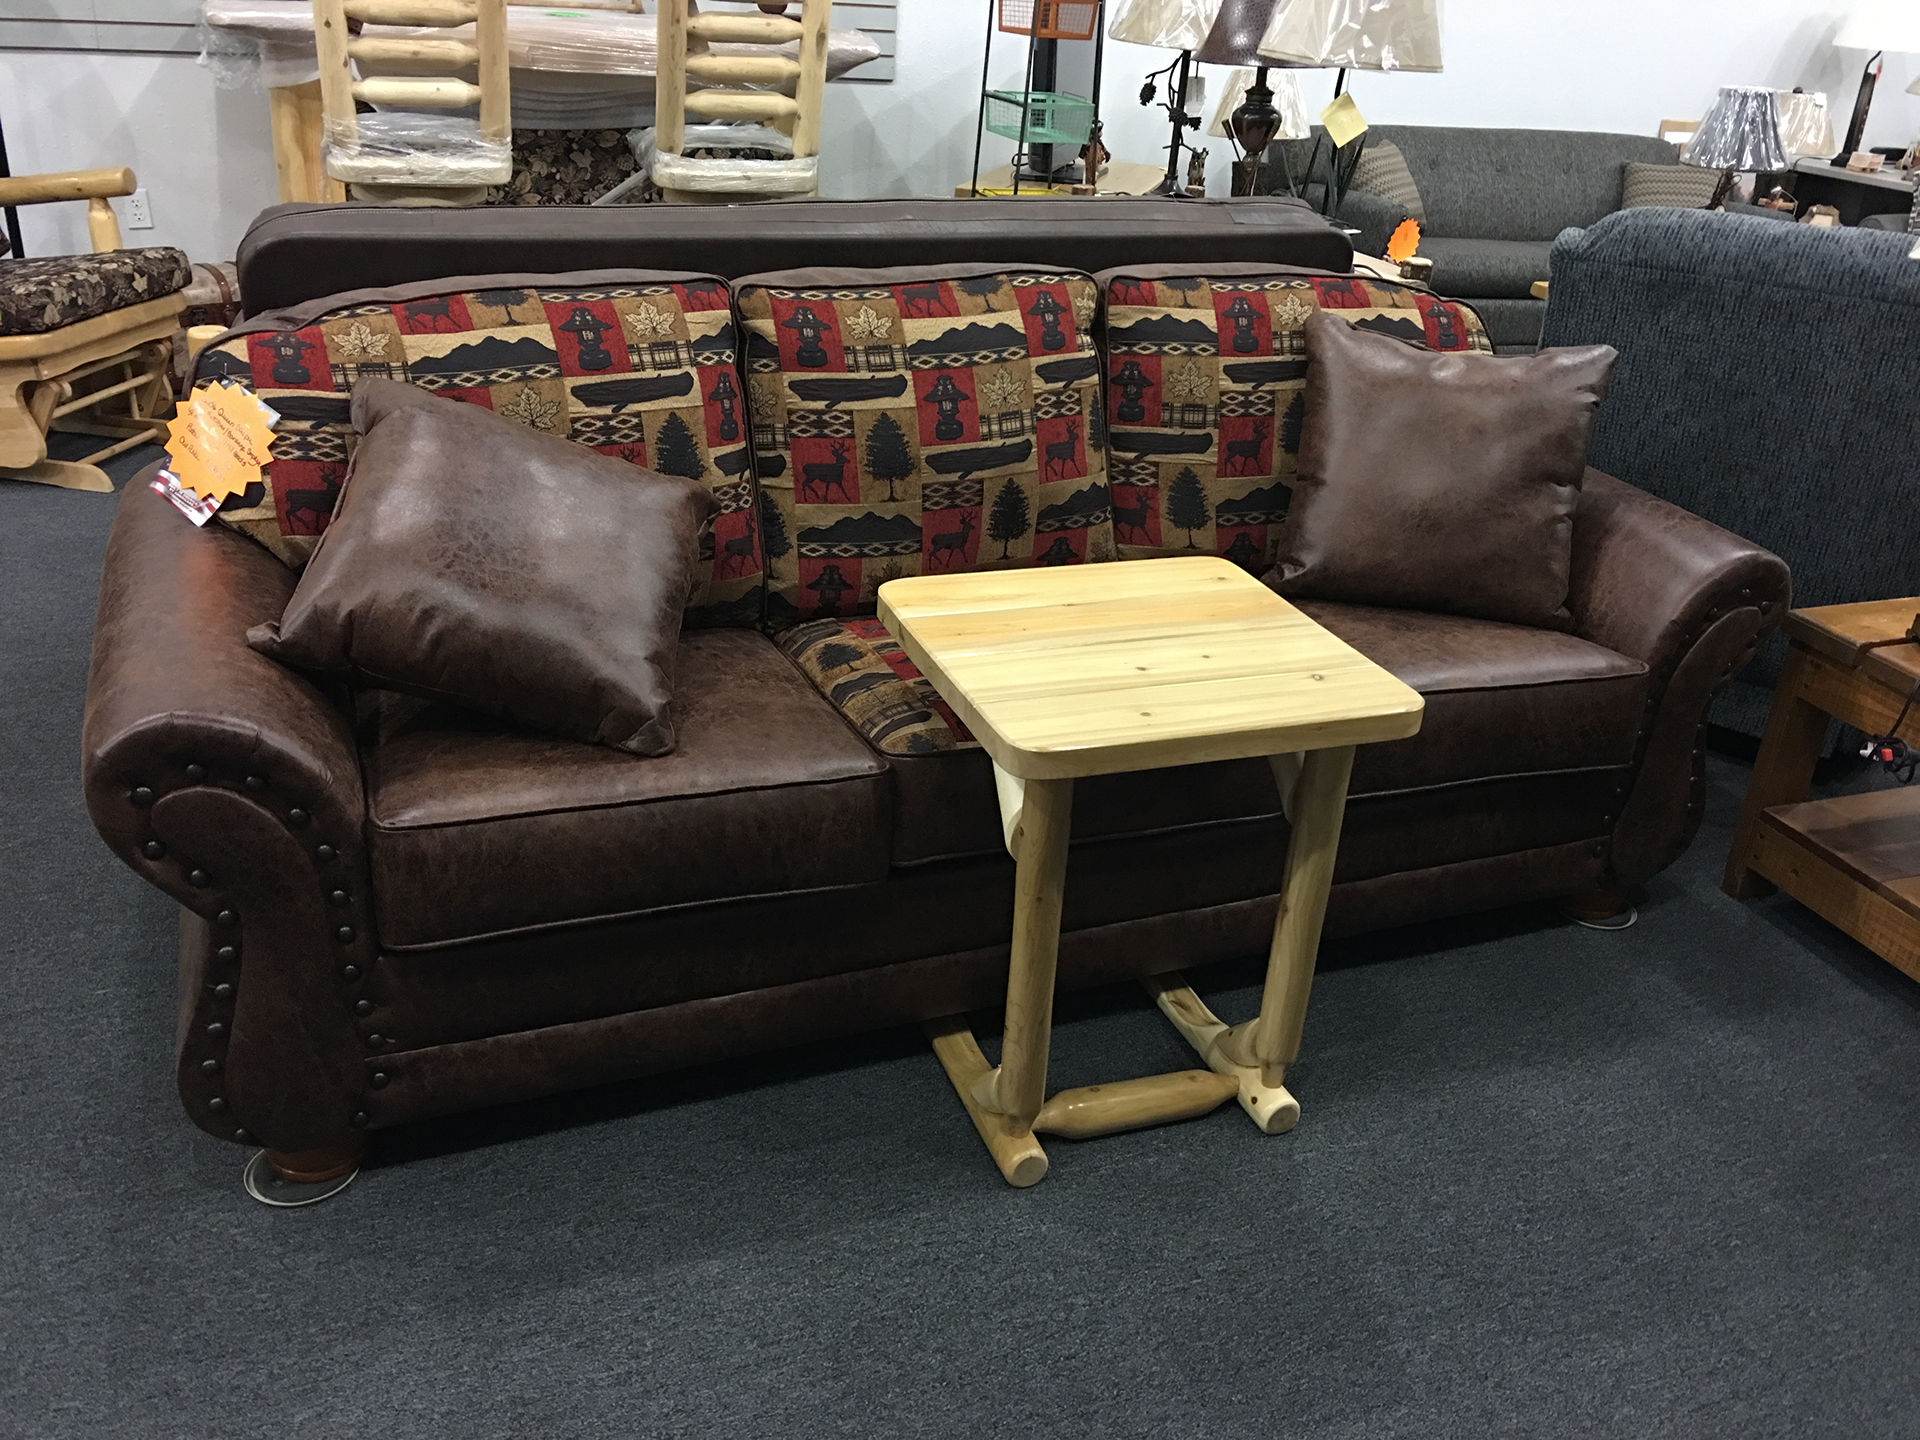 holiday-furnishings-couch-3